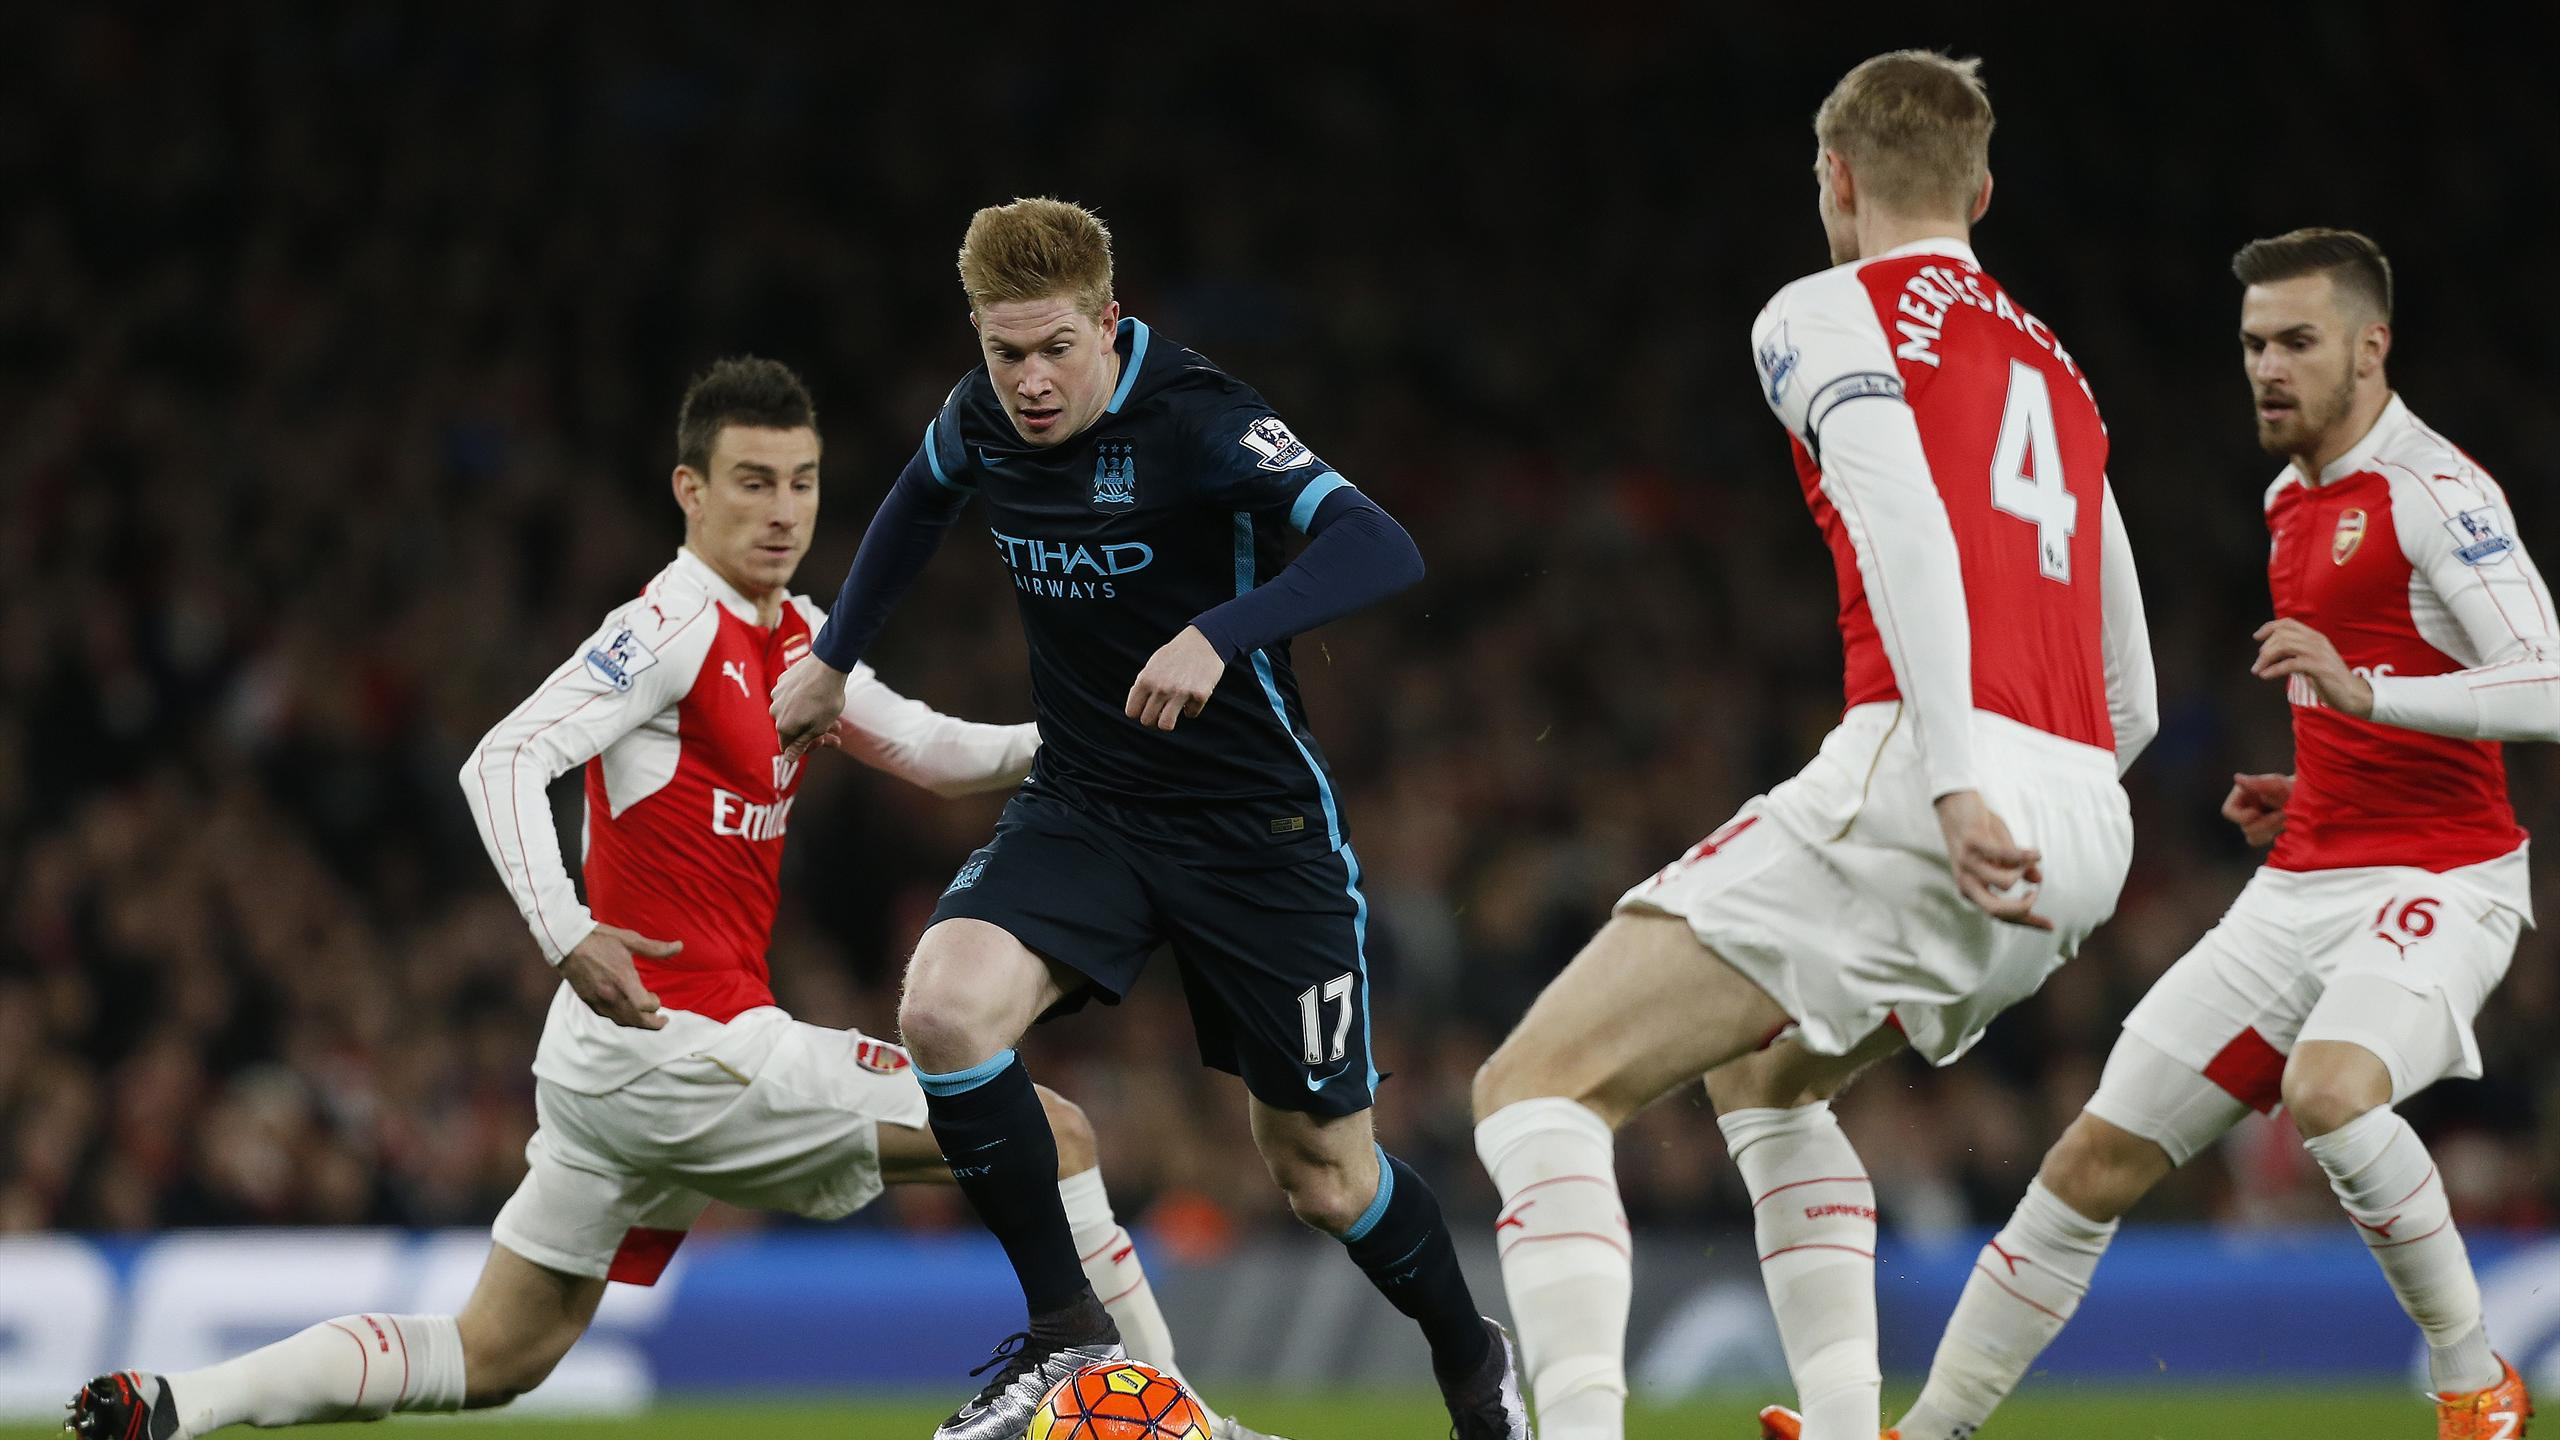 Manchester City's Belgian midfielder Kevin De Bruyne (2L) runs past Arsenal's French defender Laurent Koscielny (L), Arsenal's German defender Per Mertesacker (2R)